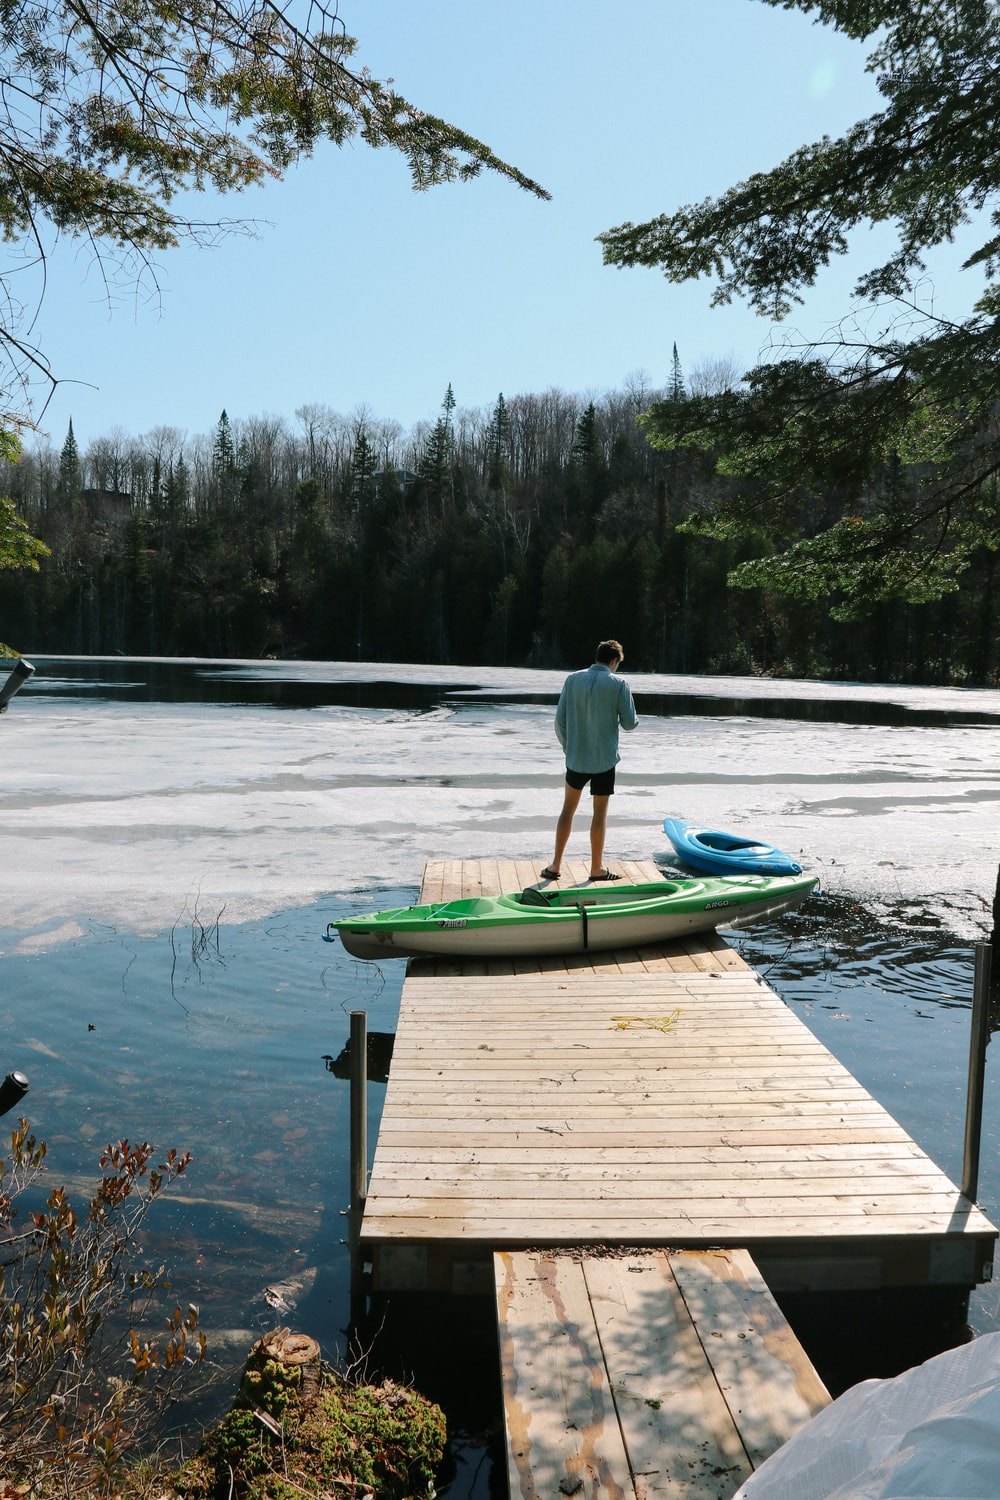 person standing on dock near kayaks